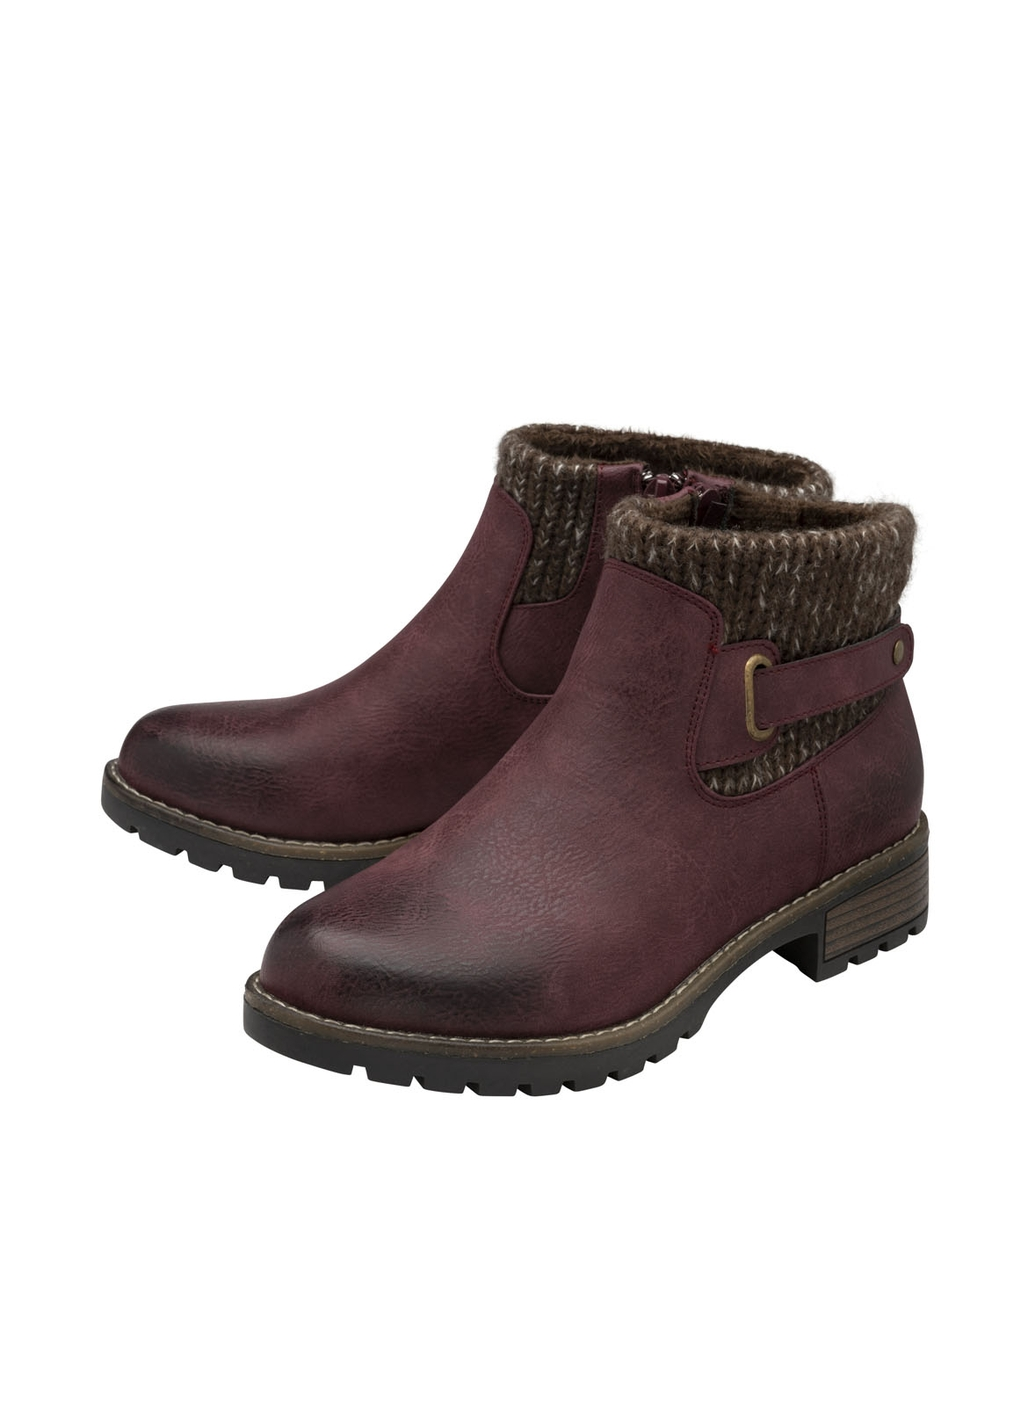 Lotus Fearne Ankle Boots in Burgundy